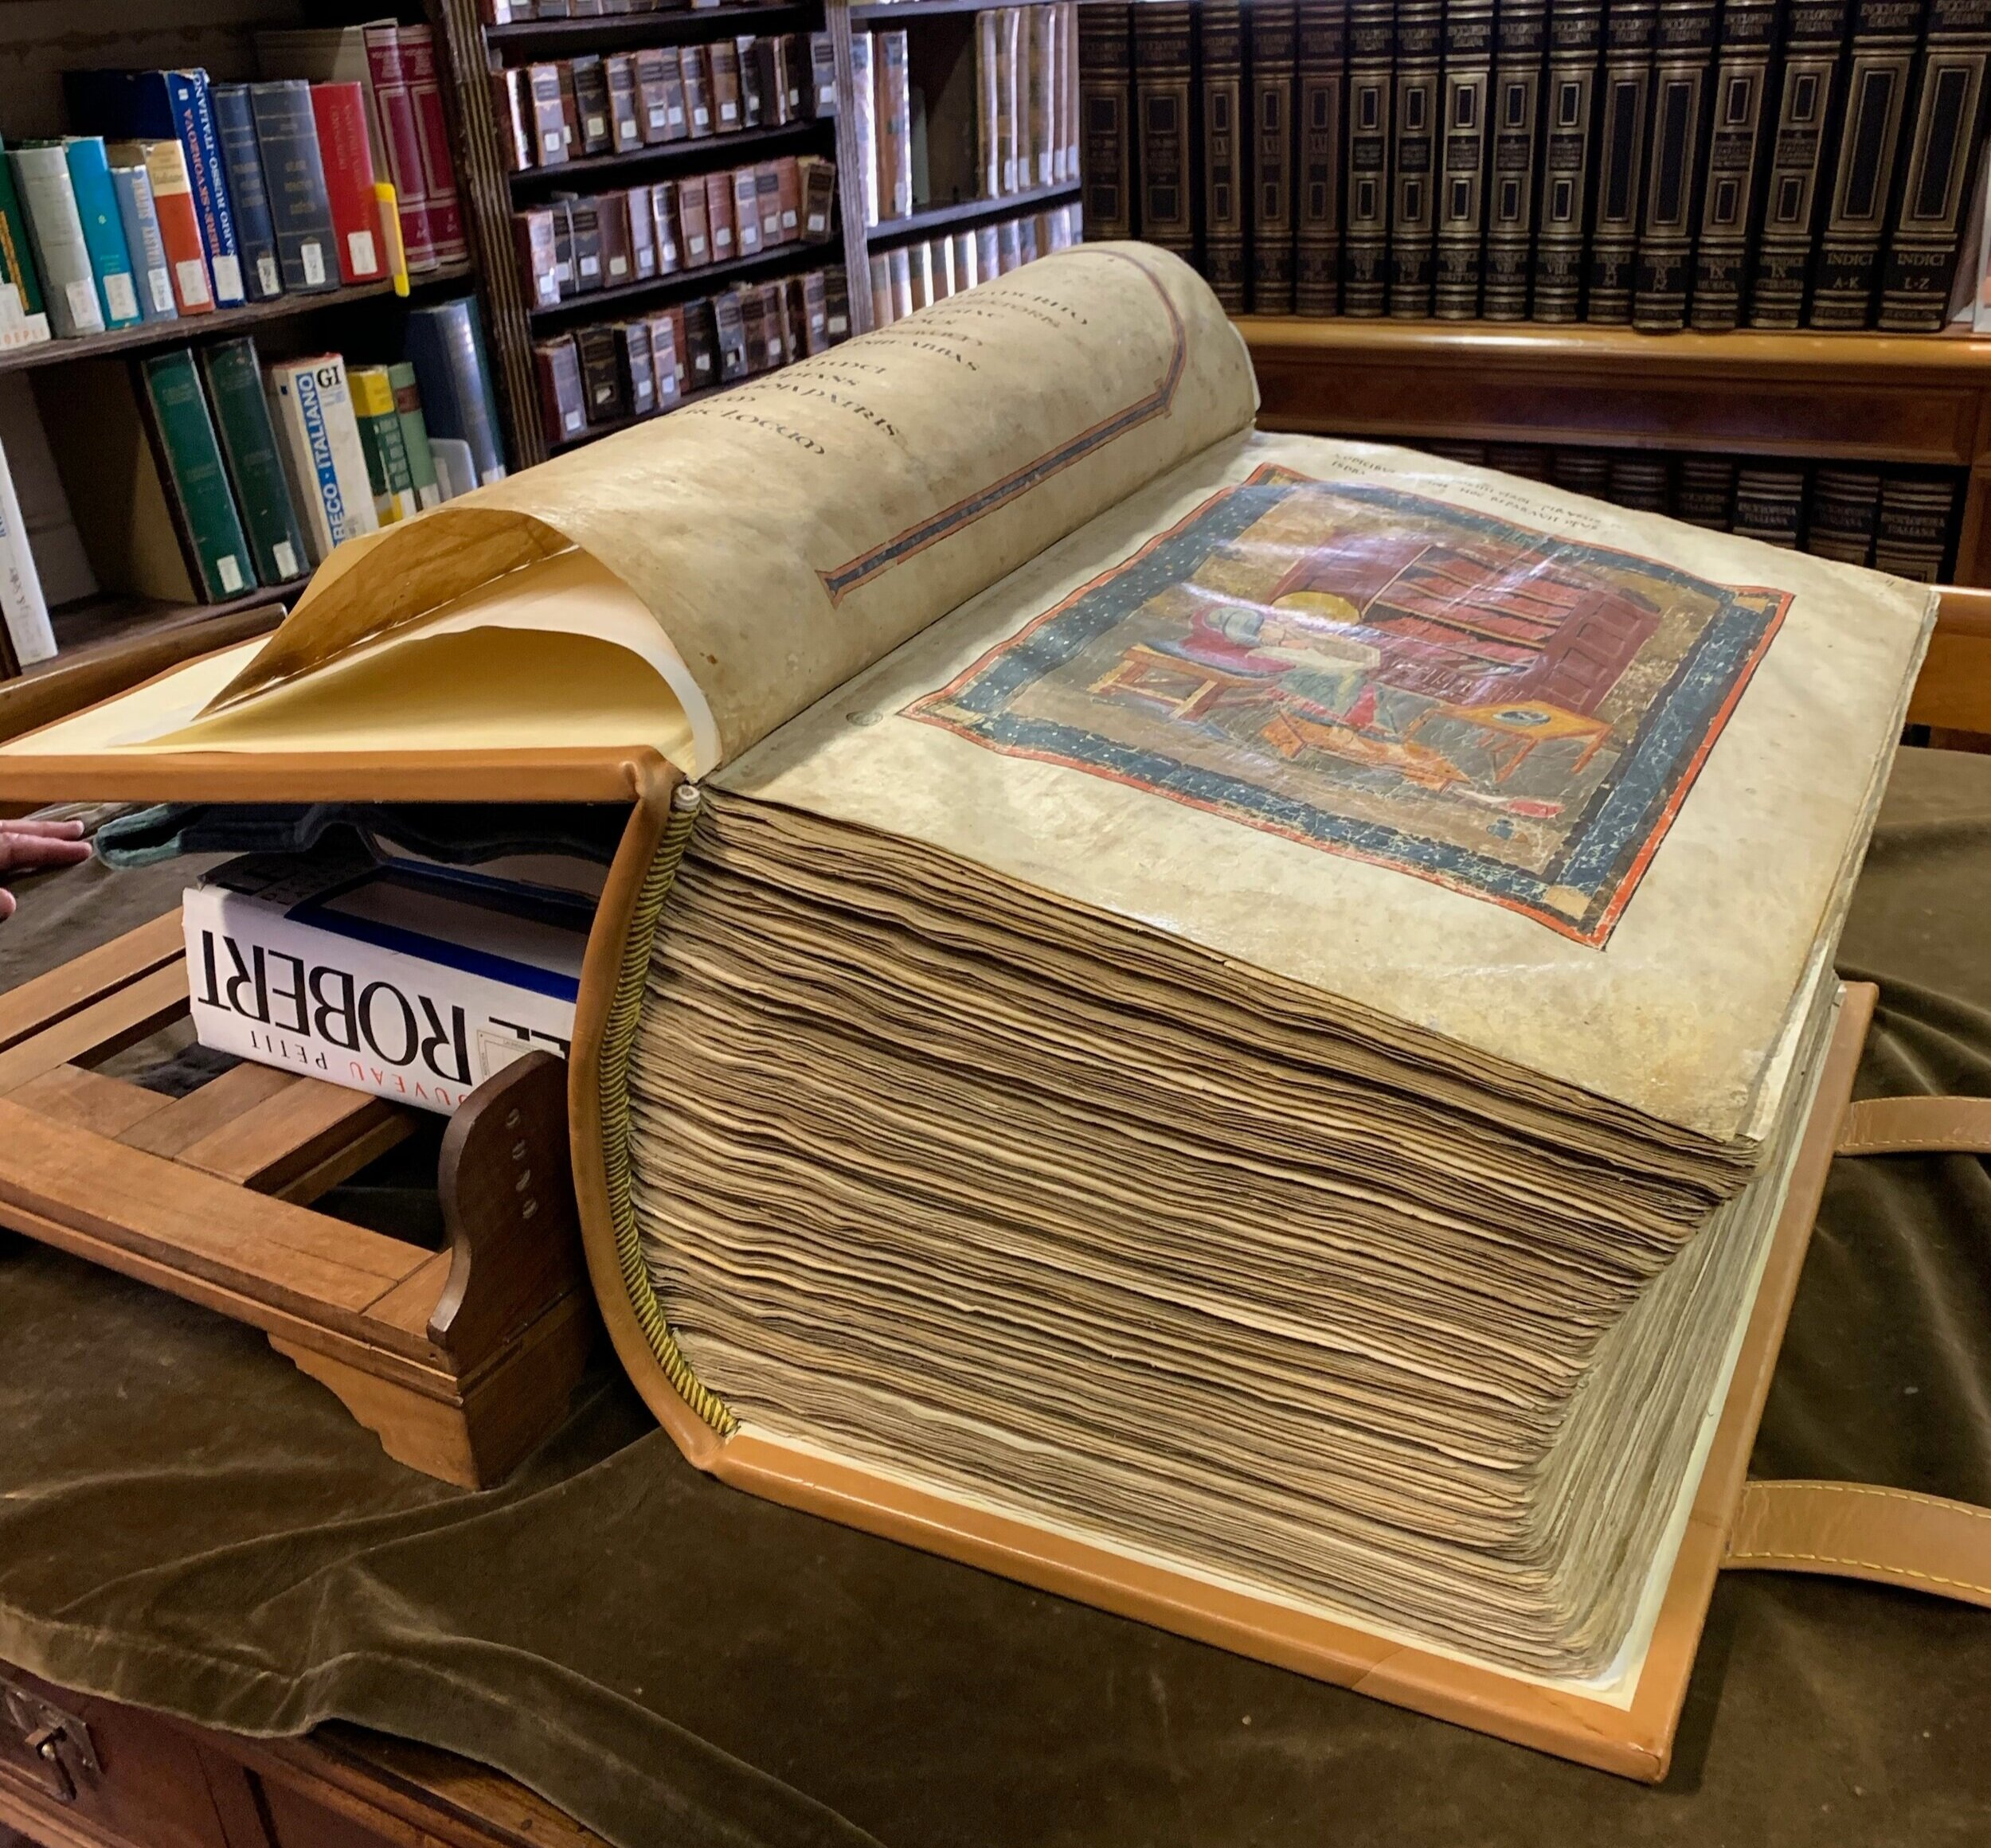 The  Codex Amiatinus  as seen in Florence at the  Biblioteca Medicea Laurenziana.  Photo by Roberta Ahmanson.